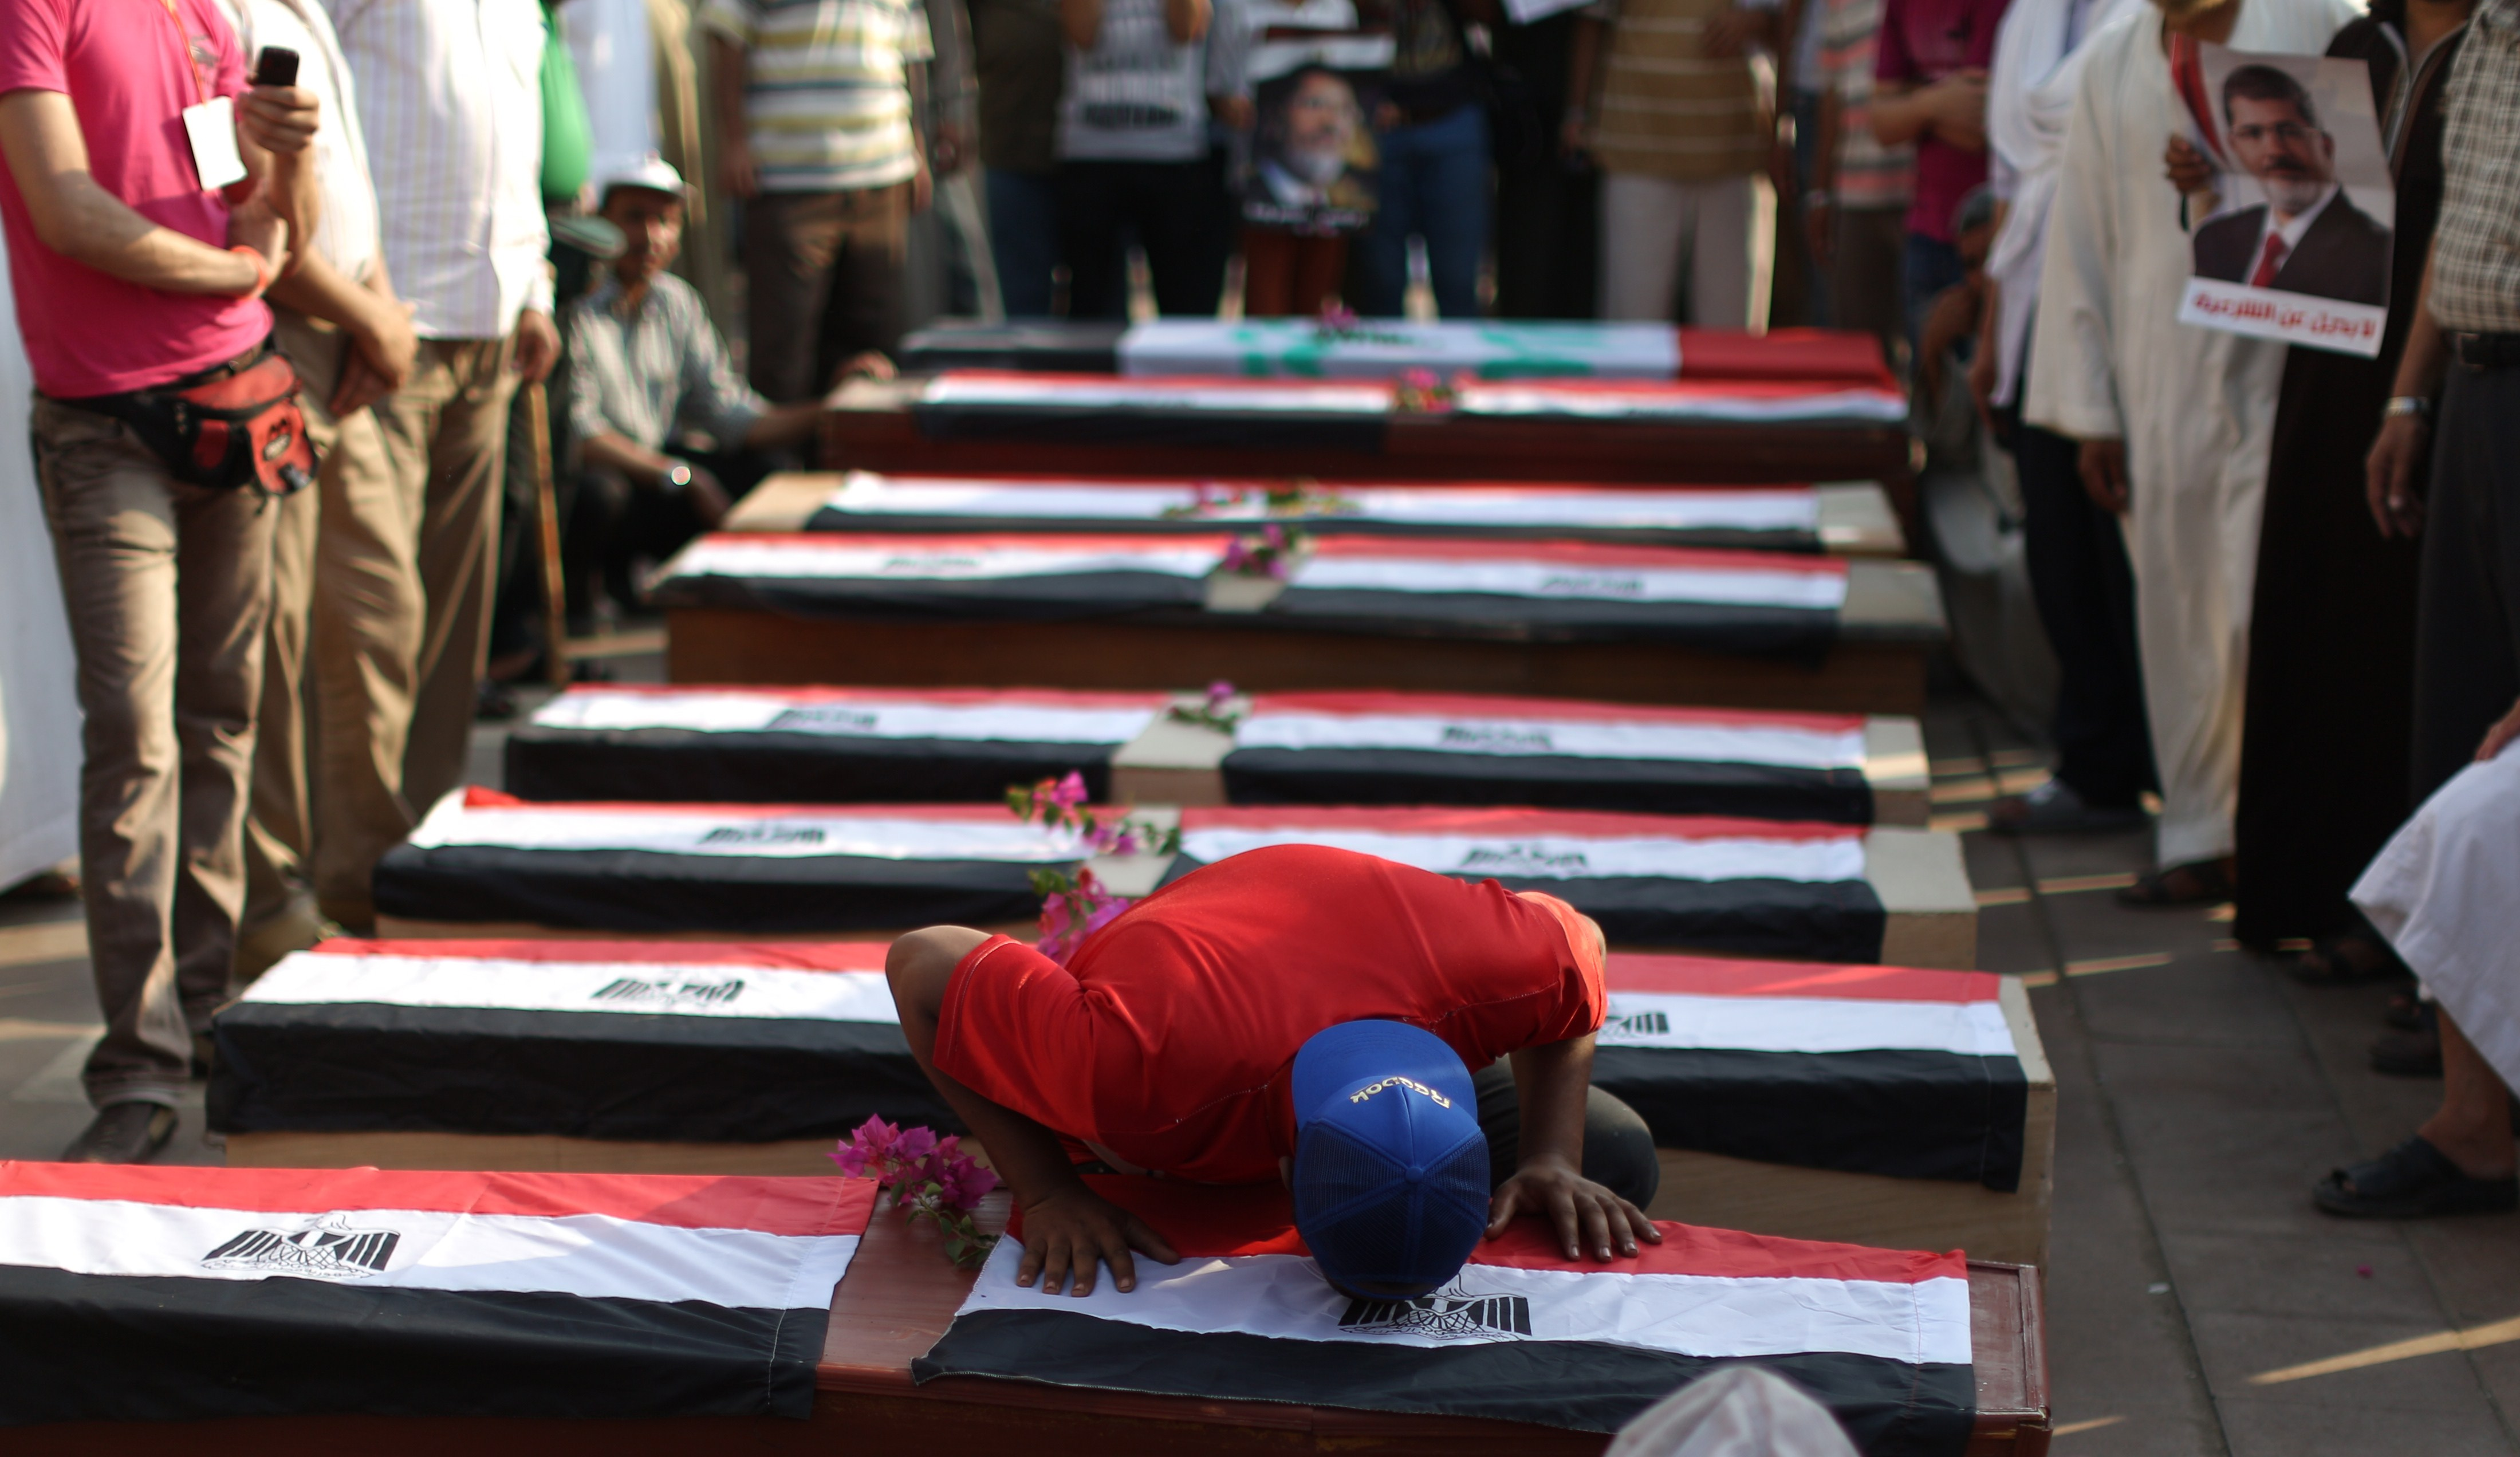 supporter of deposed Egyptian president Mohamed Morsi kisse an empty coffins during a fake funeral in the memory of their fellow protesters who died during clashes the day before, on July 9, 2013 as part of a rally in support with Morsi in front of Cairo's Rabaa al-Adawiya mosque.  (AFP Photo)